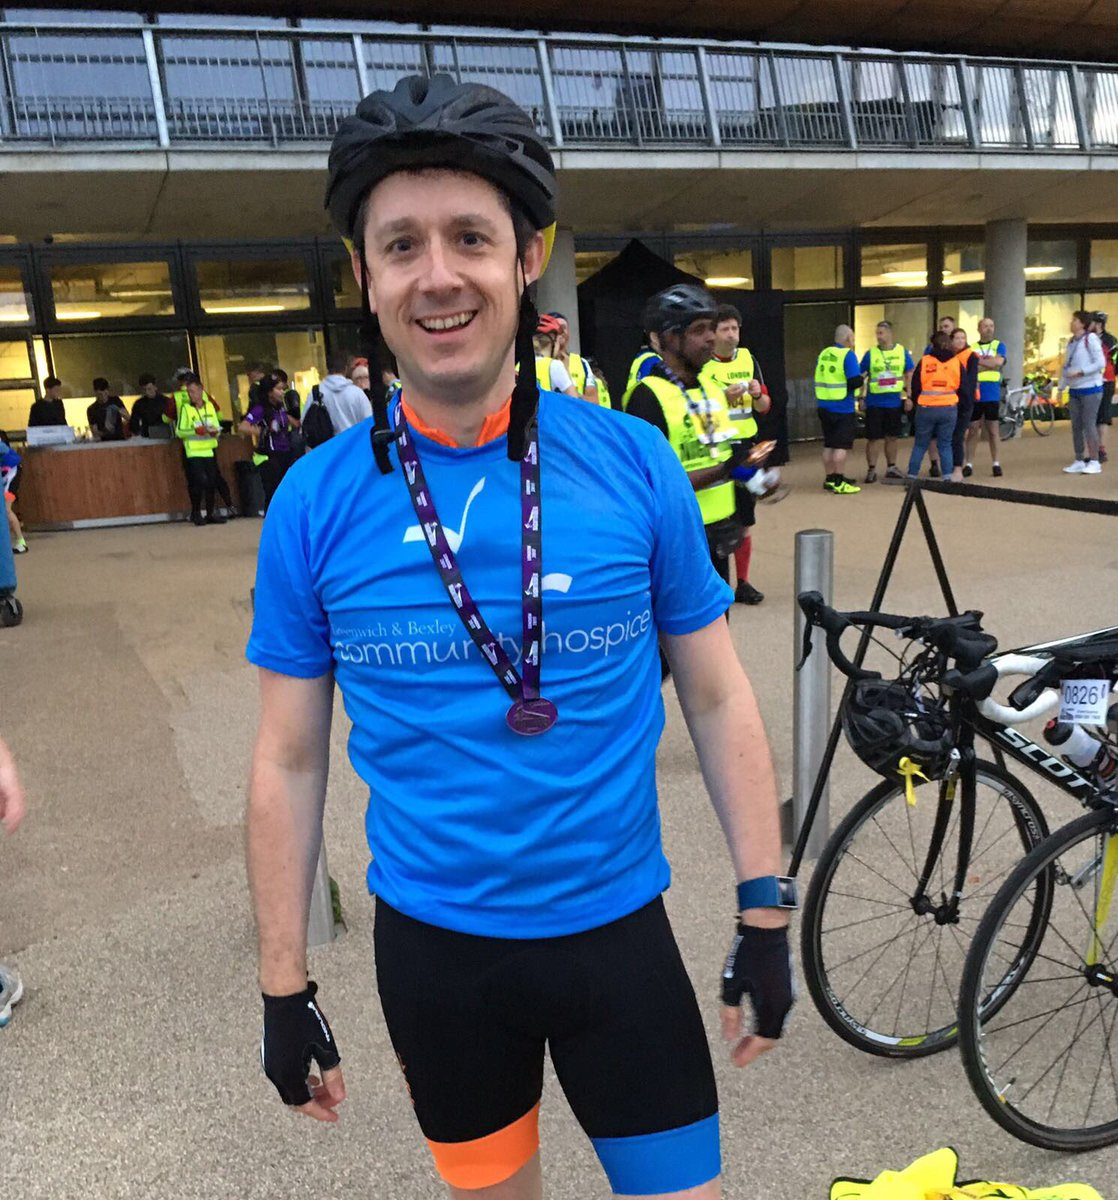 Nightrider raises a tidy sum for Greenwich & Bexley Community Hospice! image